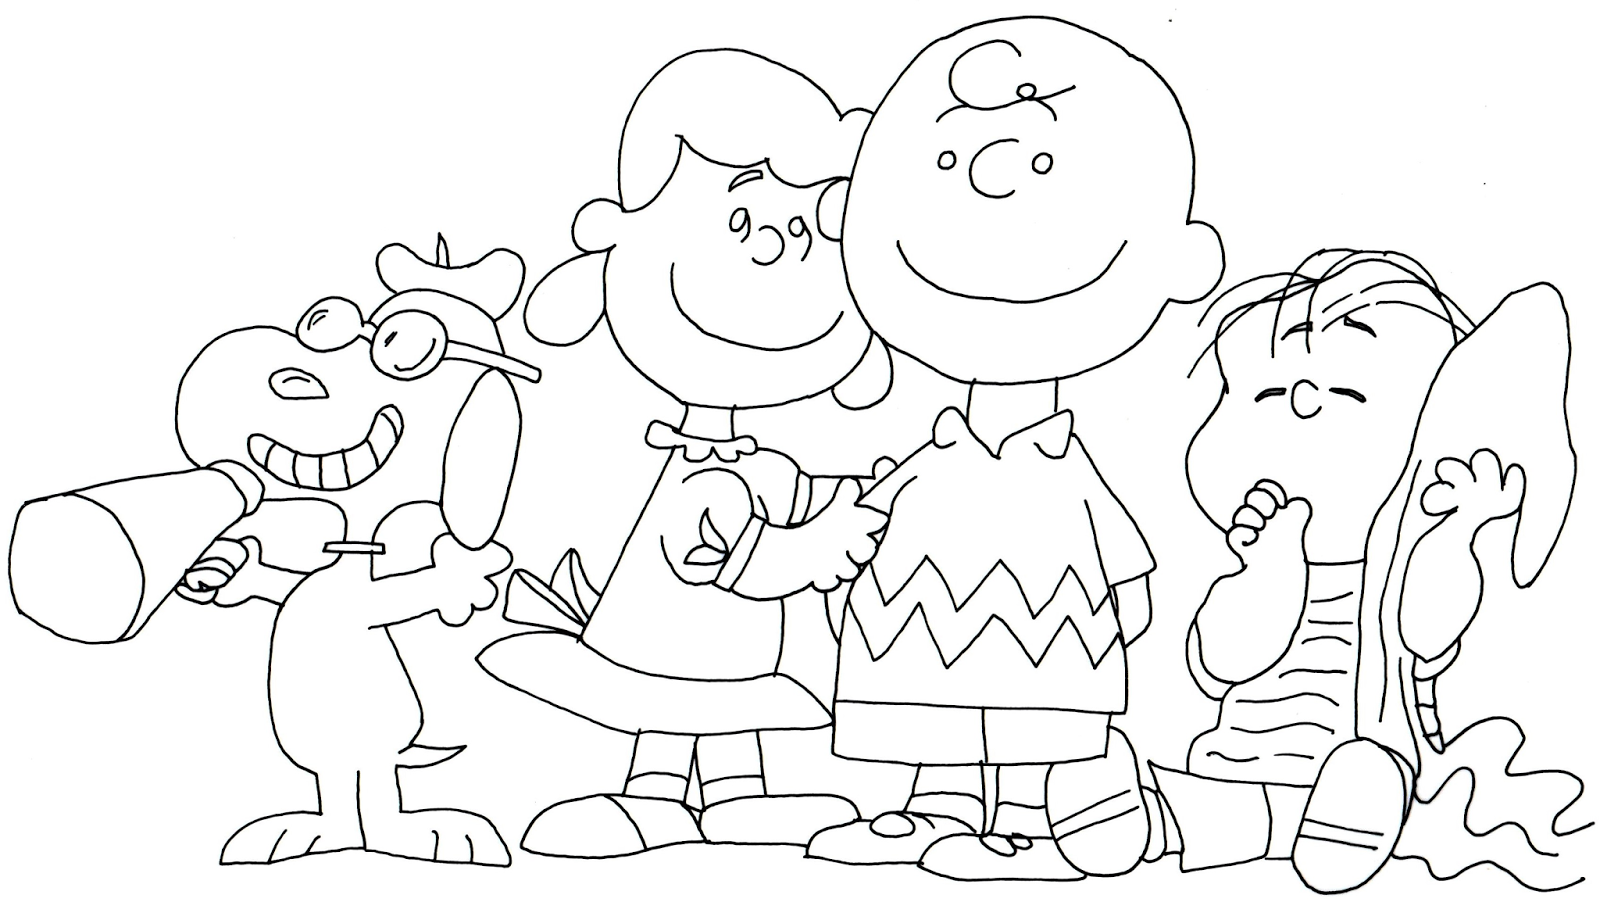 free charlie brown snoopy and peanuts coloring pages snoopy lucy